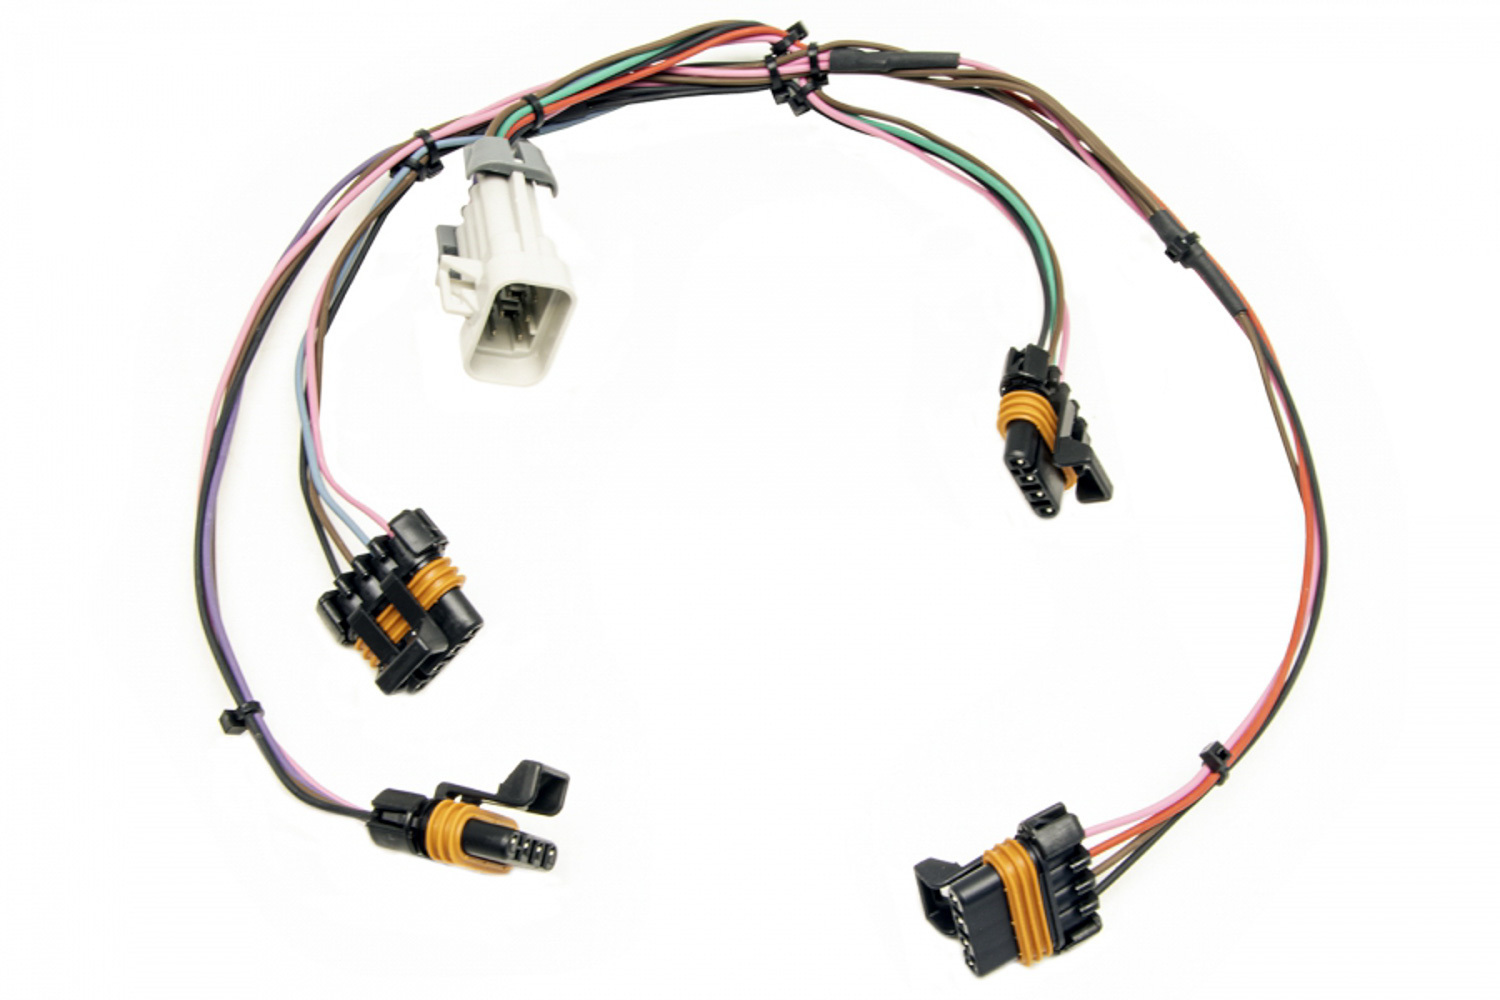 Painless Wiring Ignition Harness 97-04 LS1 Engines